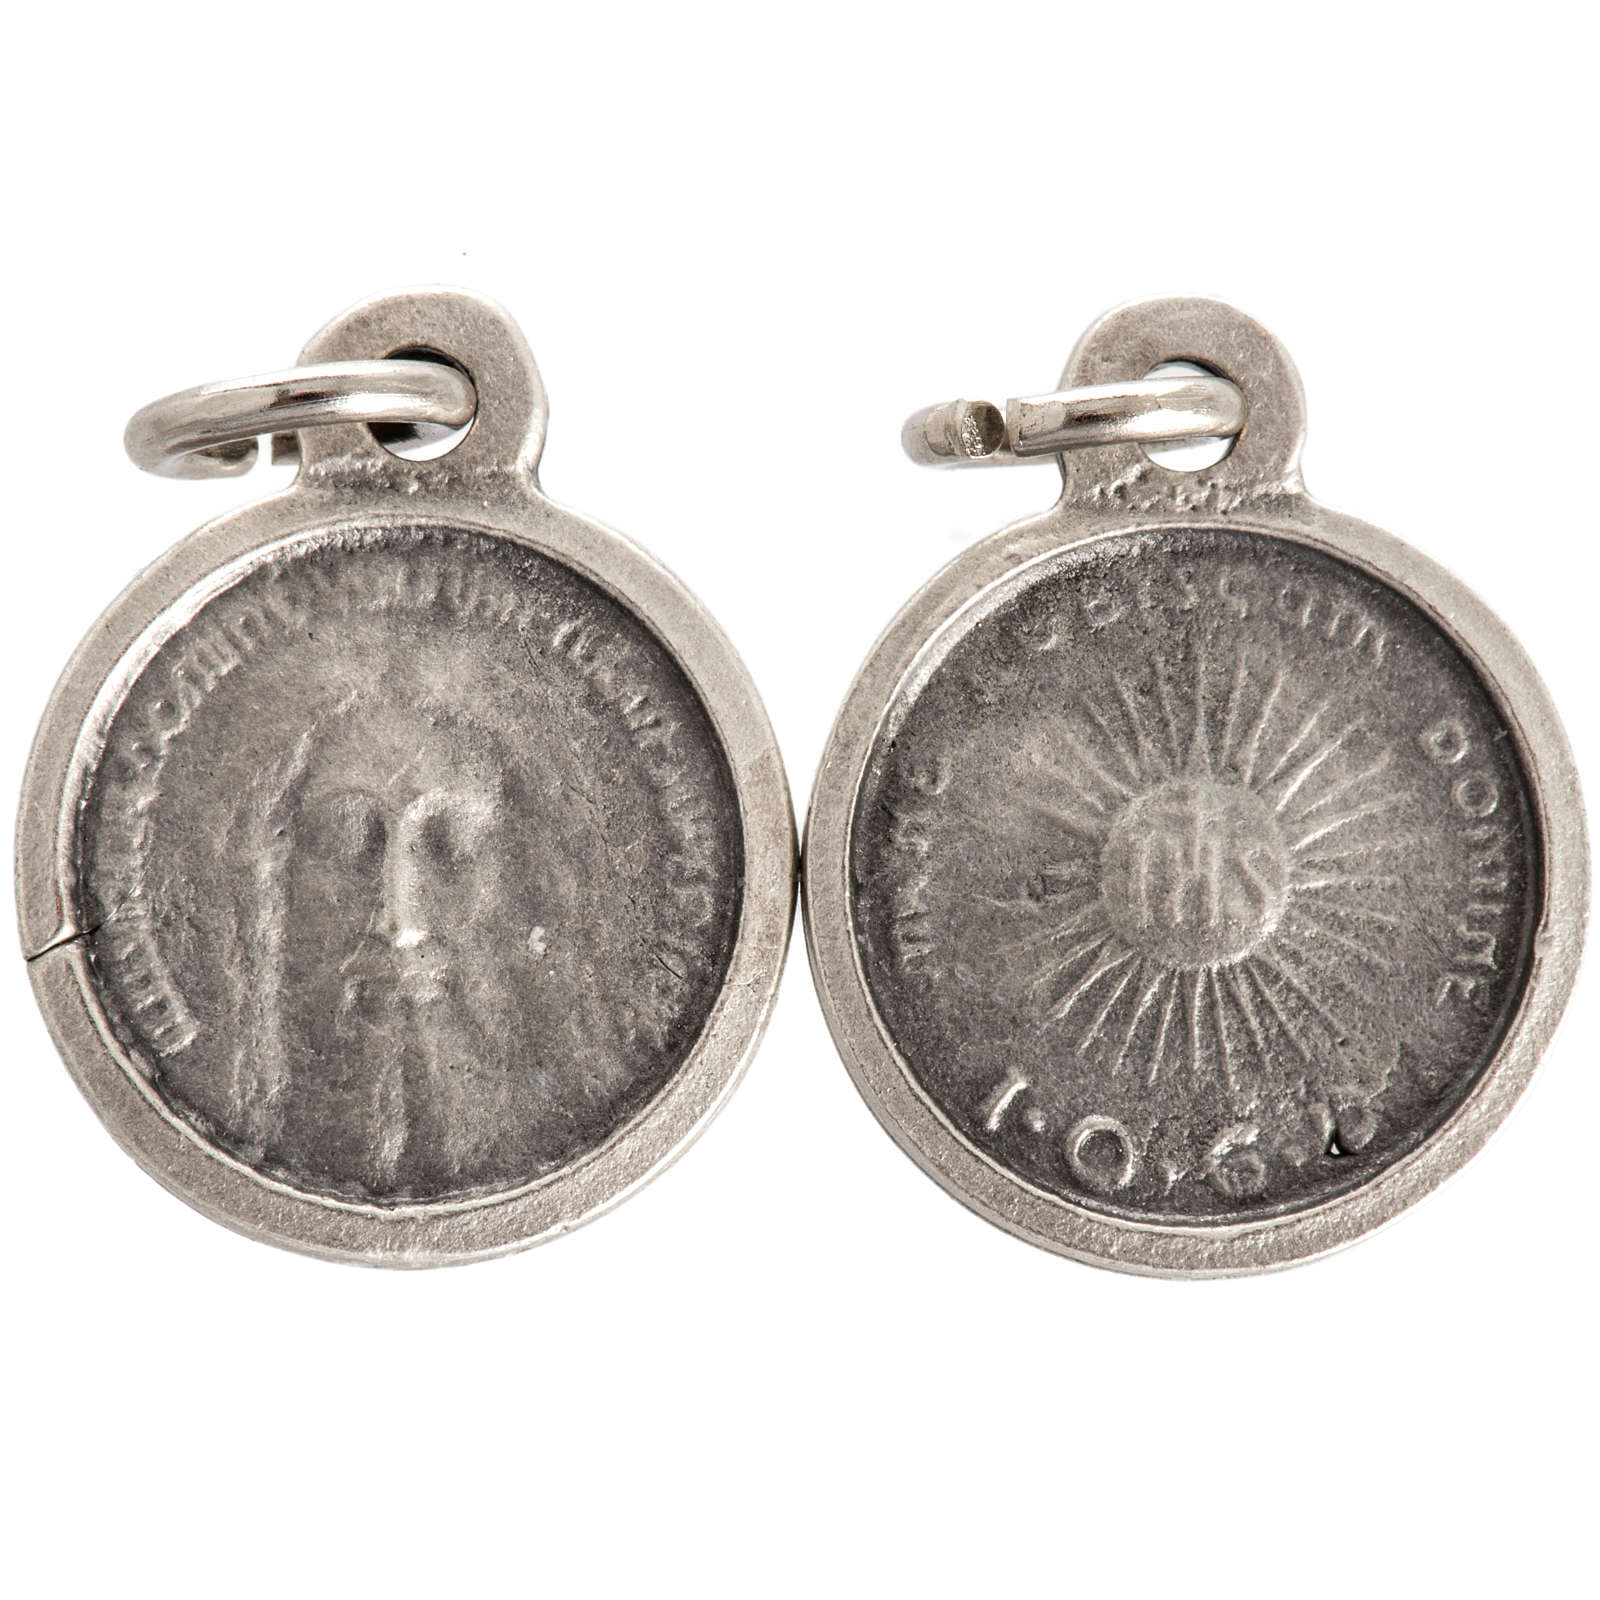 Face of Christ round medal in silver metal 16mm 4